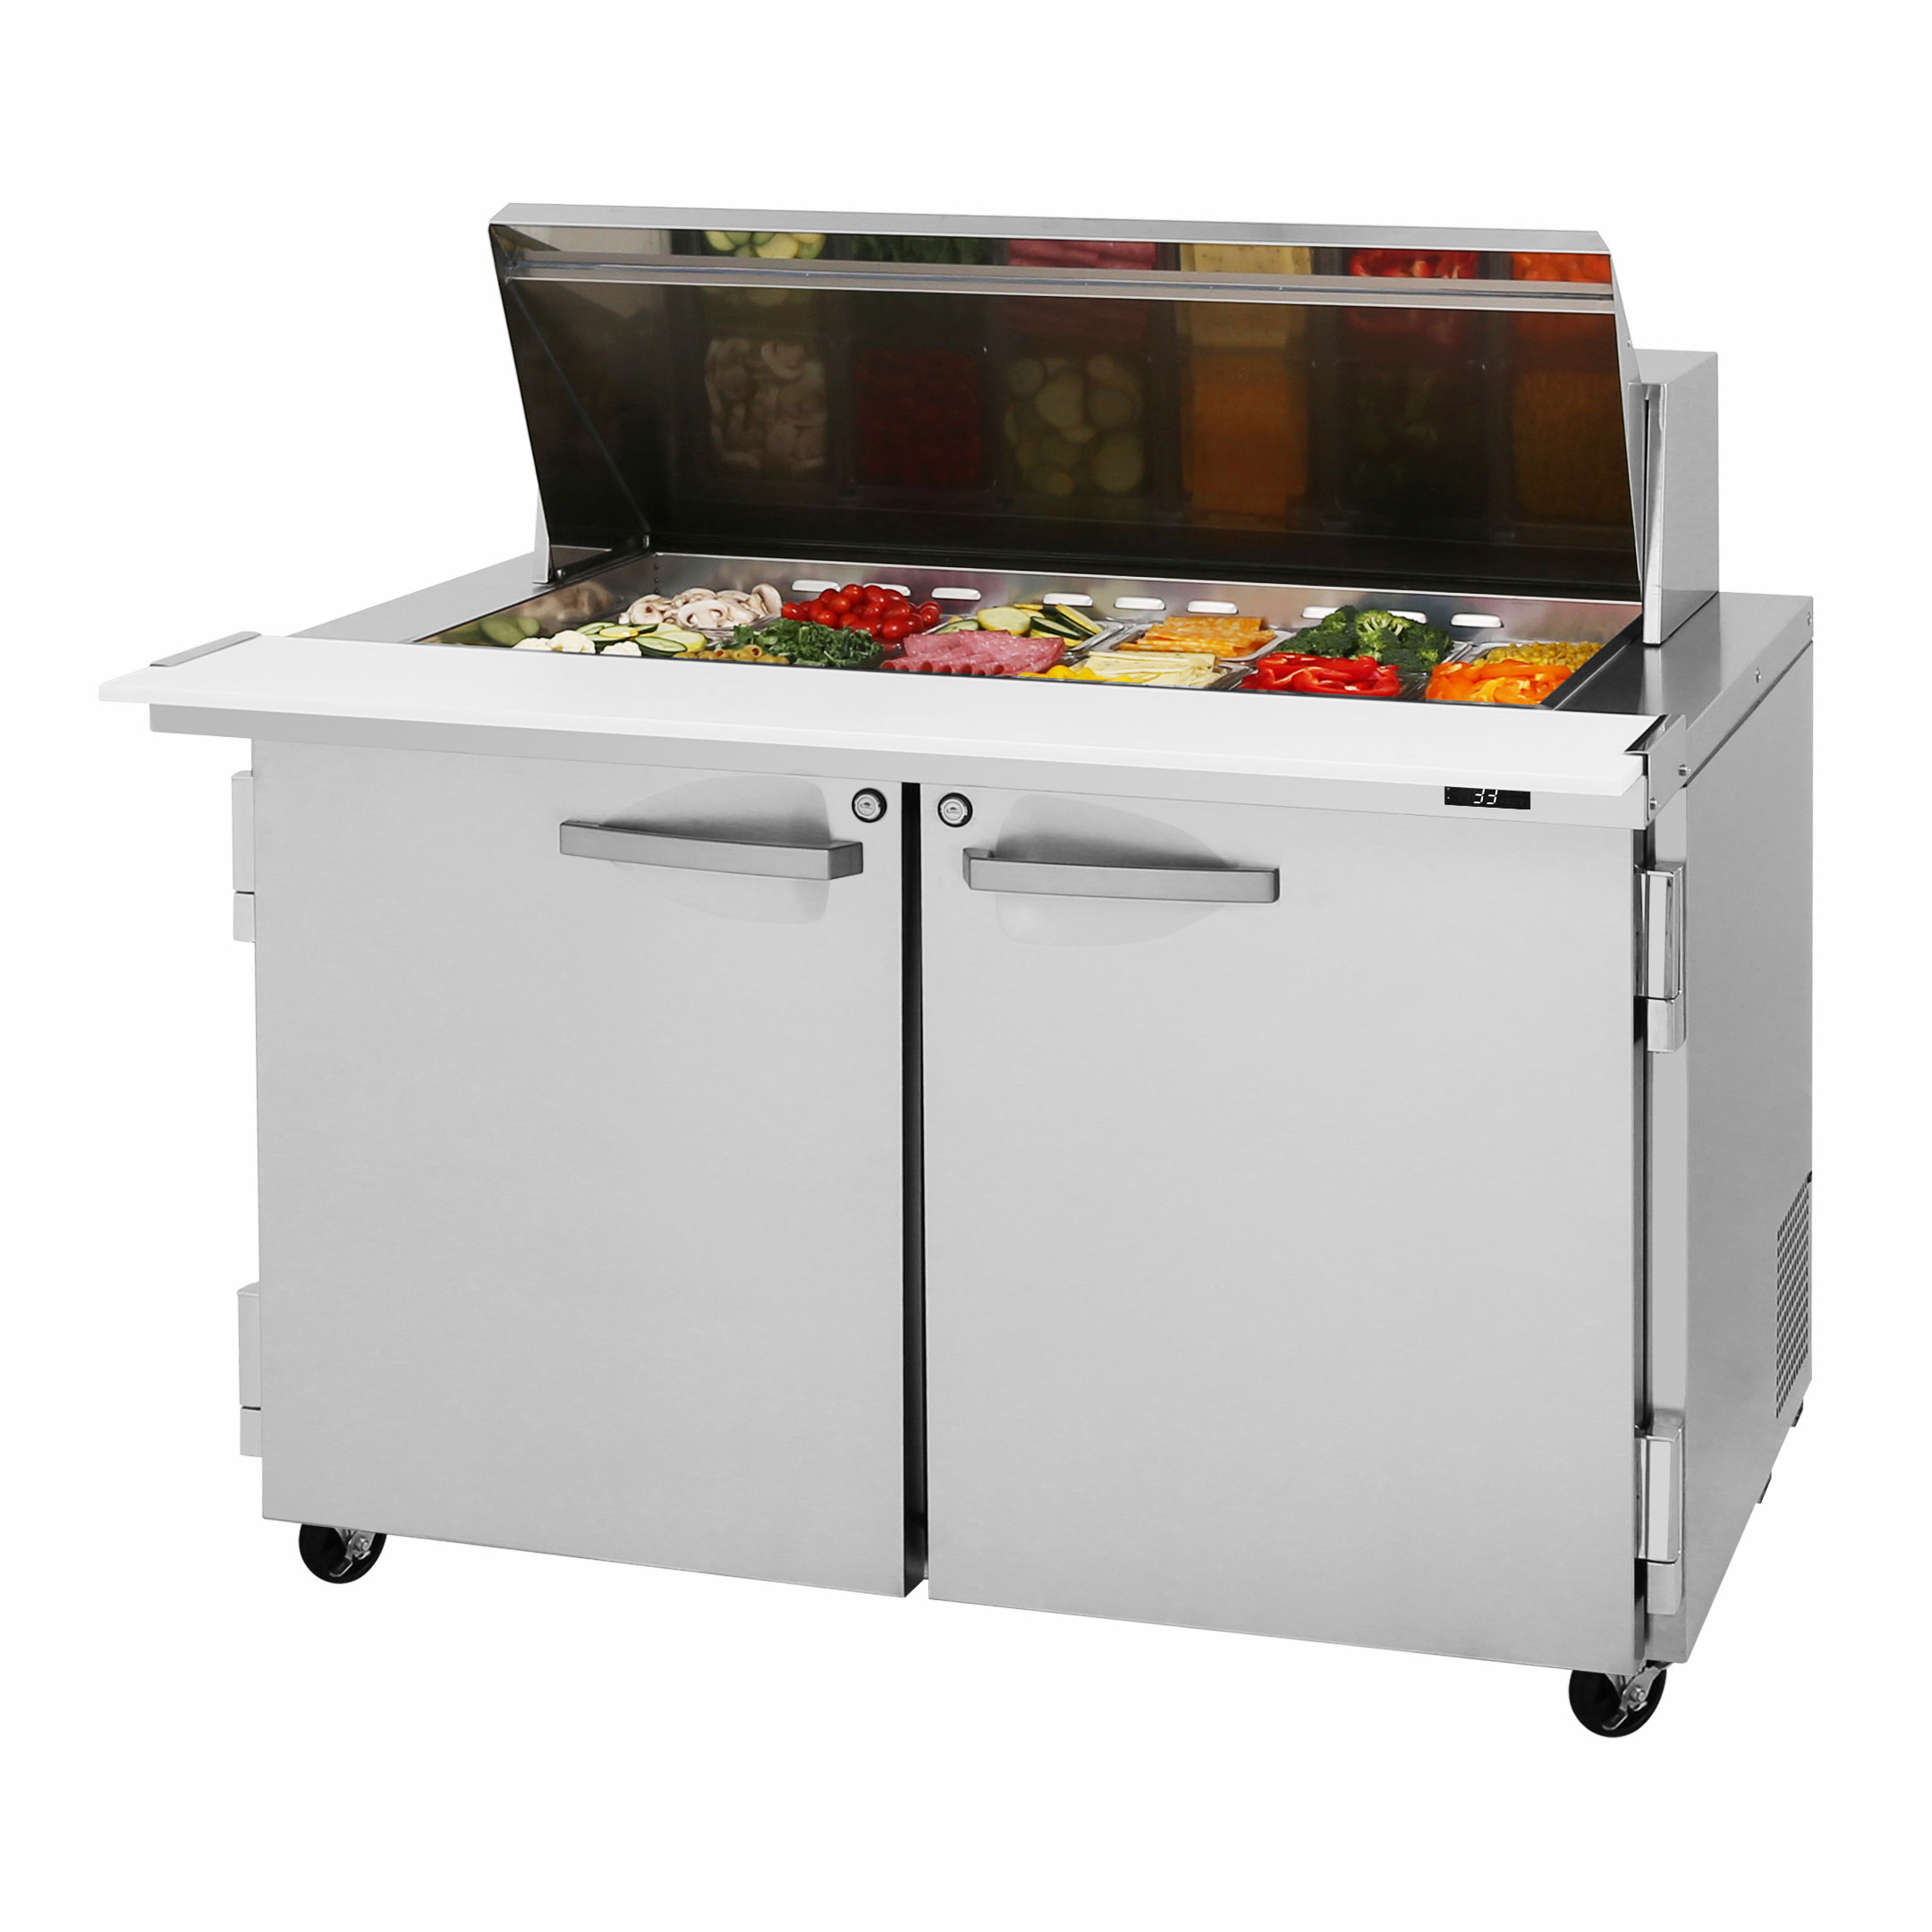 Turbo Air PST-48-18-N refrigerated counter, mega top sandwich / salad unit